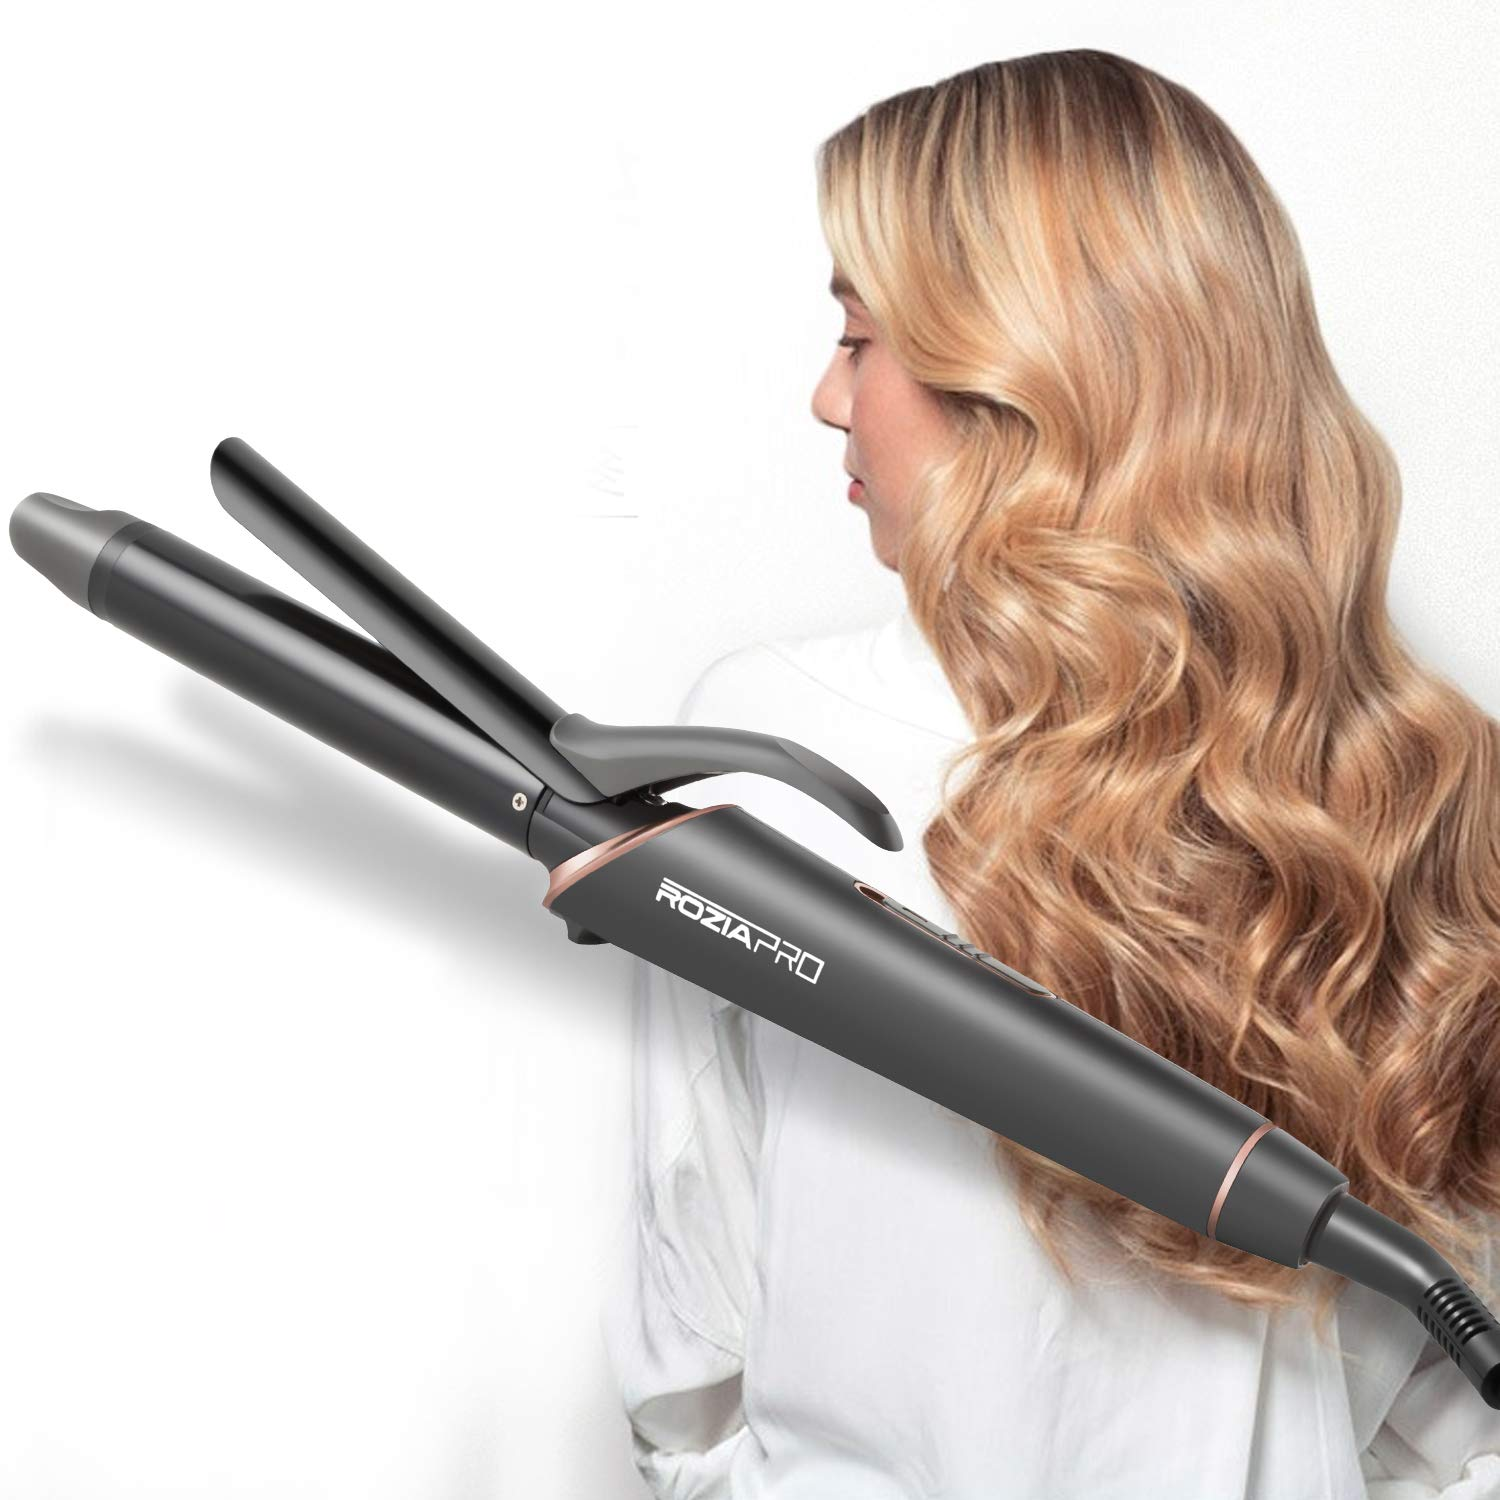 Curling Iron 1 Inch Hair Curling Iron Wand, Ceramic Tourmaline Coating Curling Wand